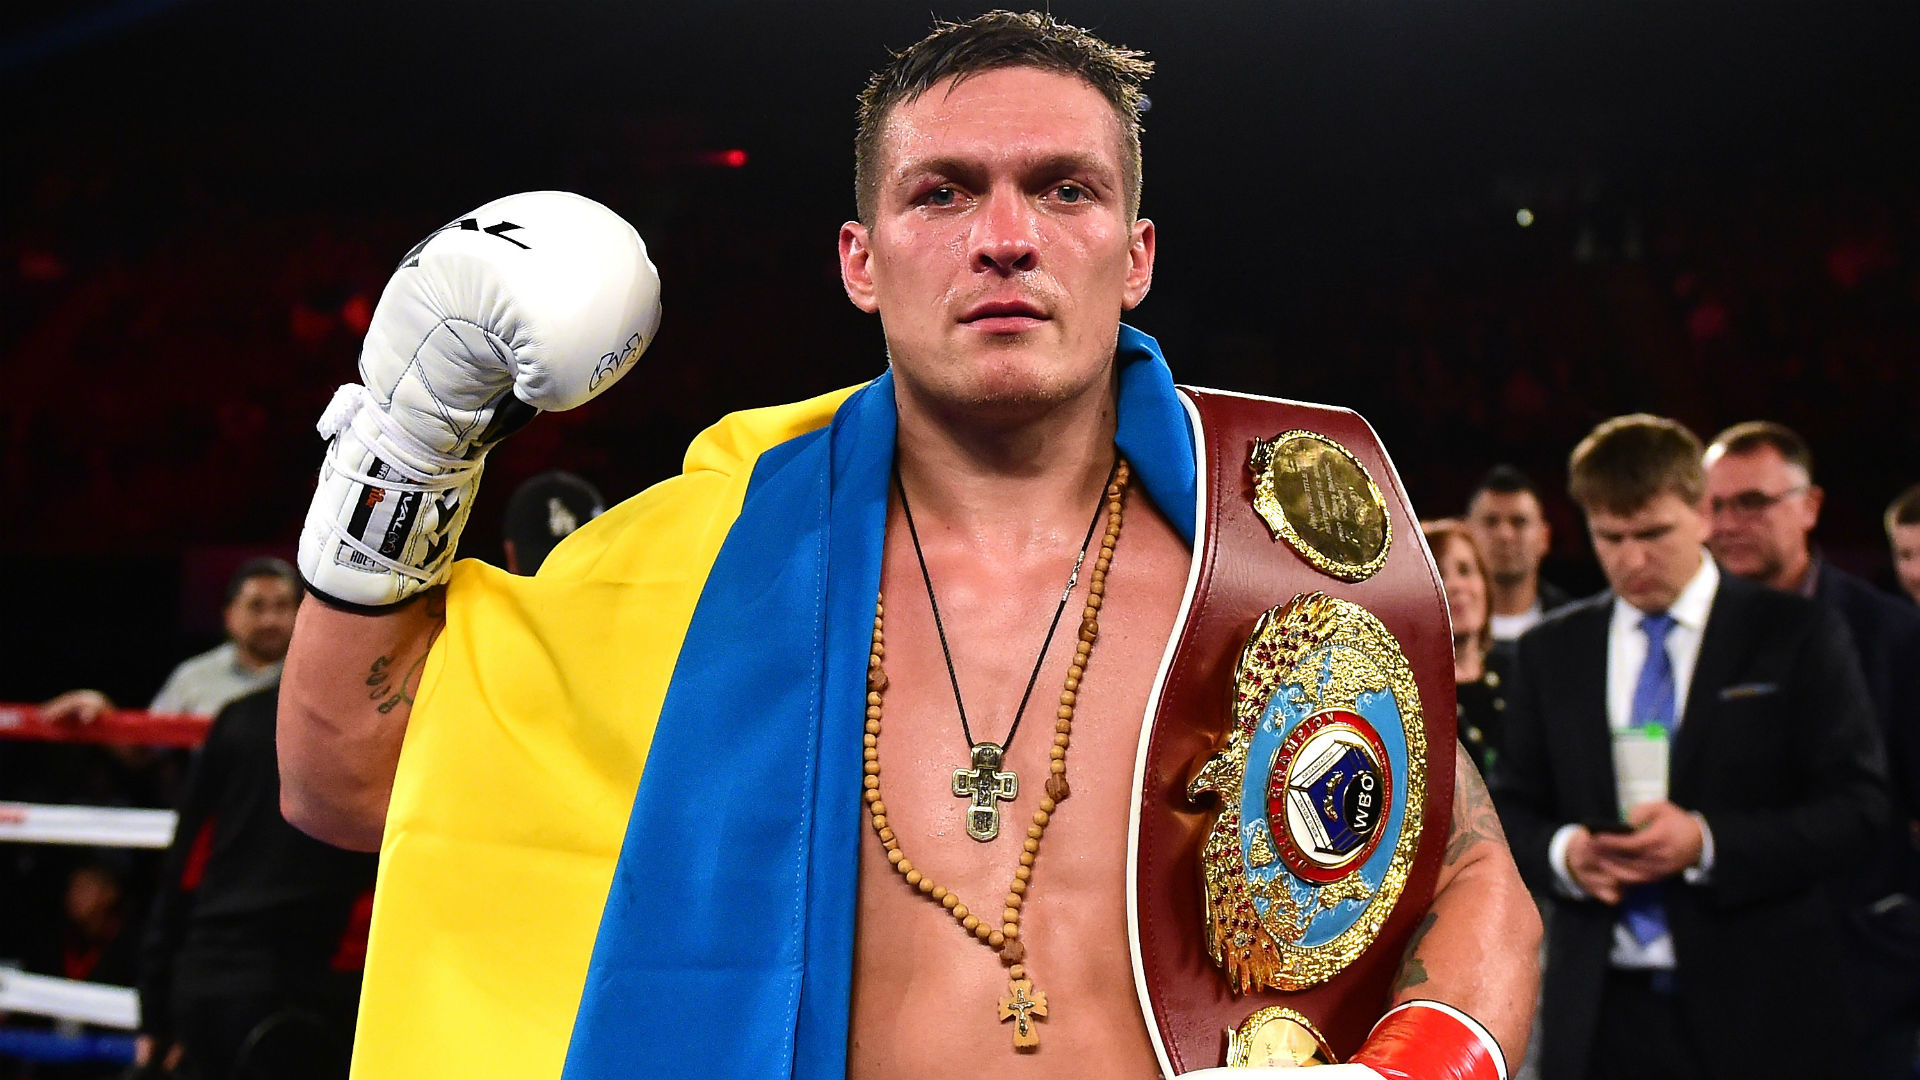 Oleksandr Usyk outboxes Murat Gassiev to win World Boxing Super Series cruiserweight title, unify division